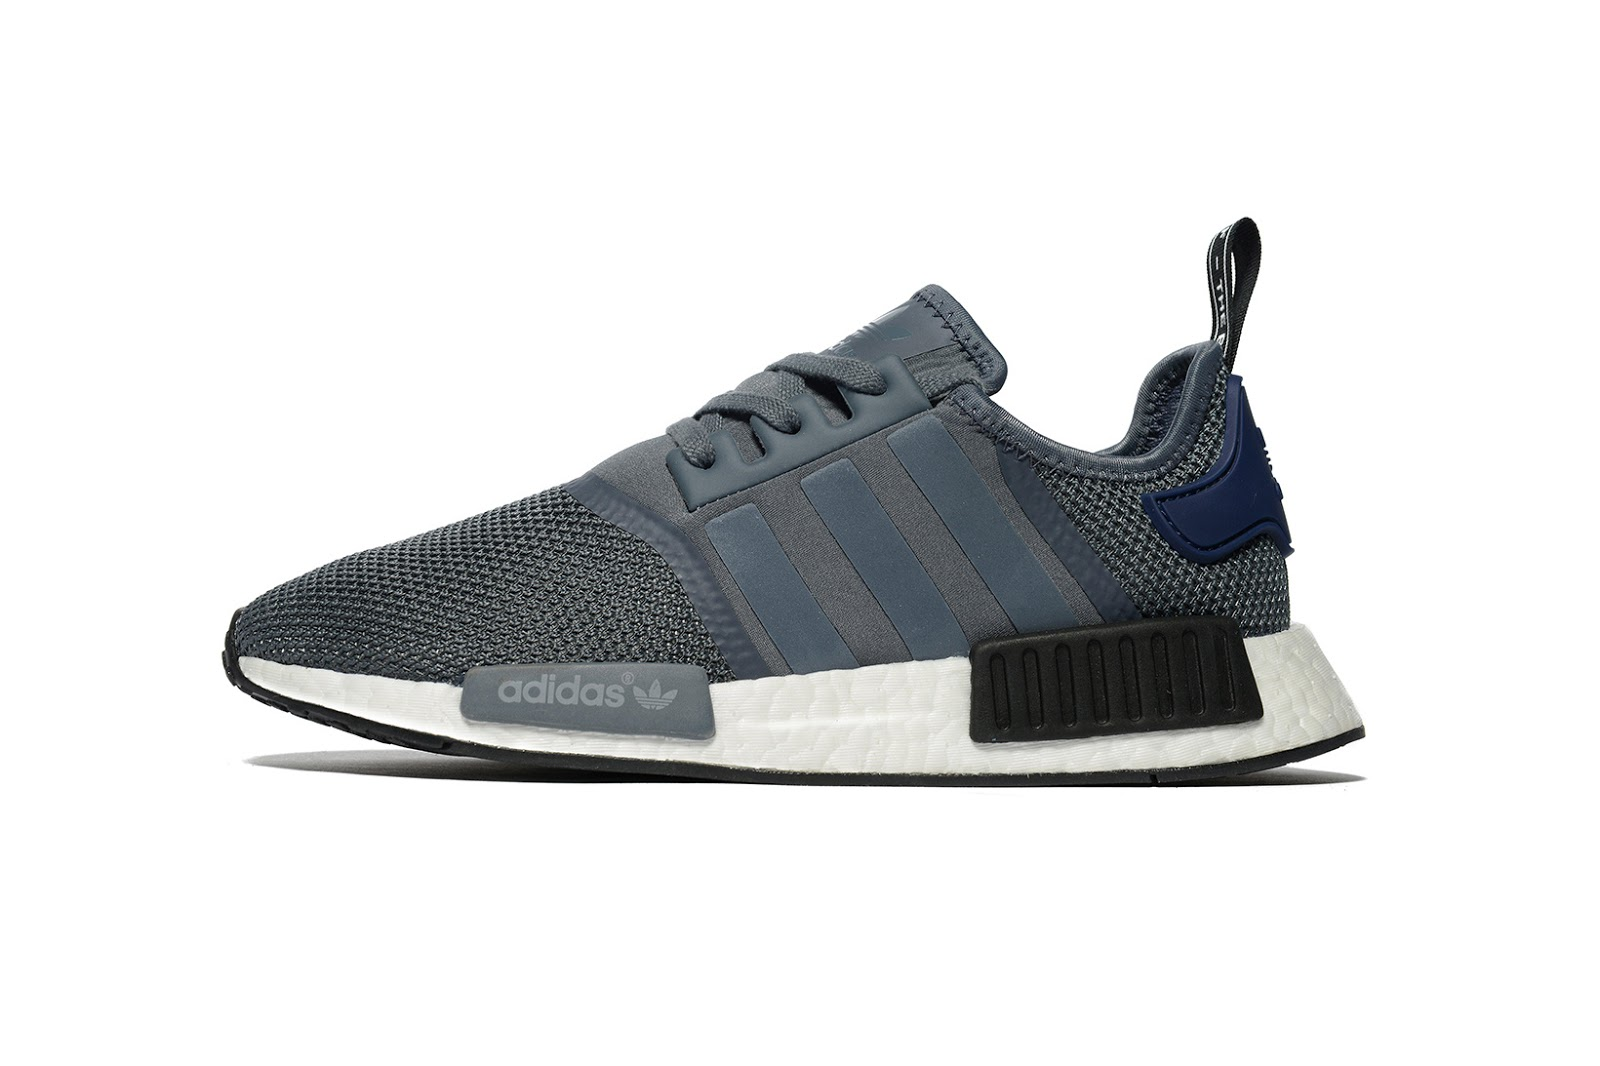 ec9a59553 ... JD Sports dropped a trio of exclusive takes on the NMD XR1 and now the  UK-based retailer is back with yet another limited-edition adi release. This  time ...